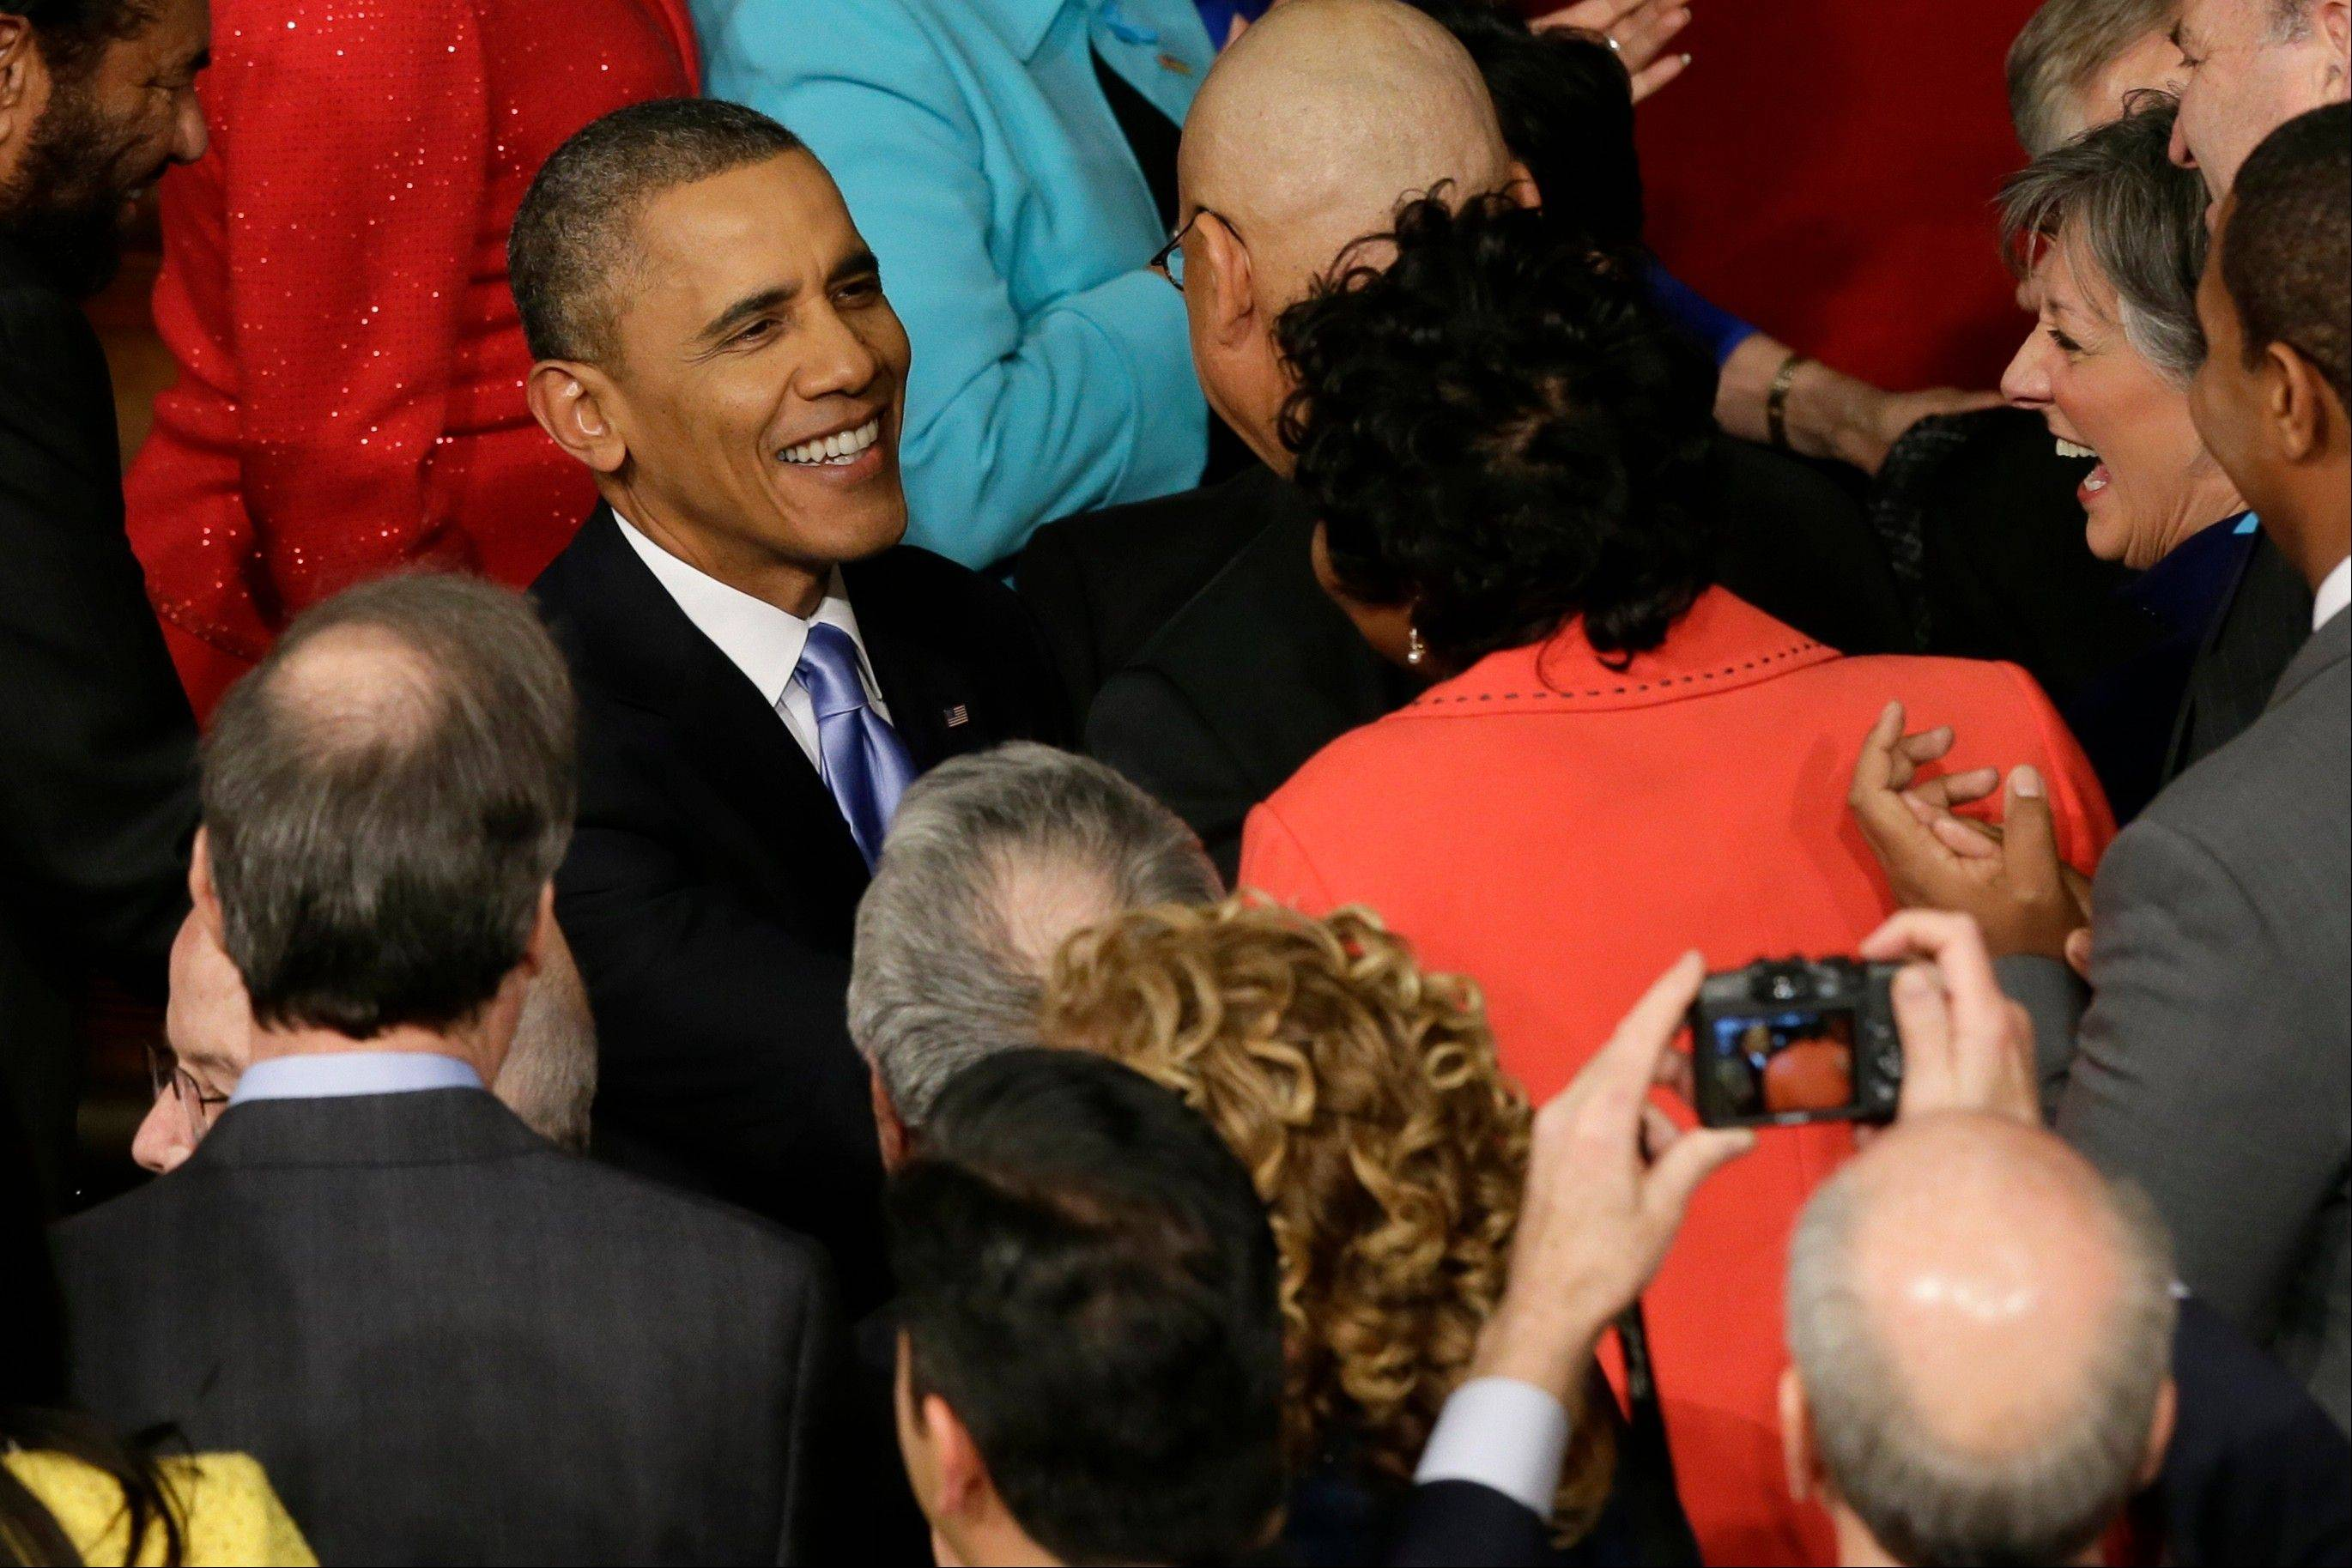 President Barack Obama is greeted as he arrives to give his State of the Union address on Capitol Hill Tuesday.